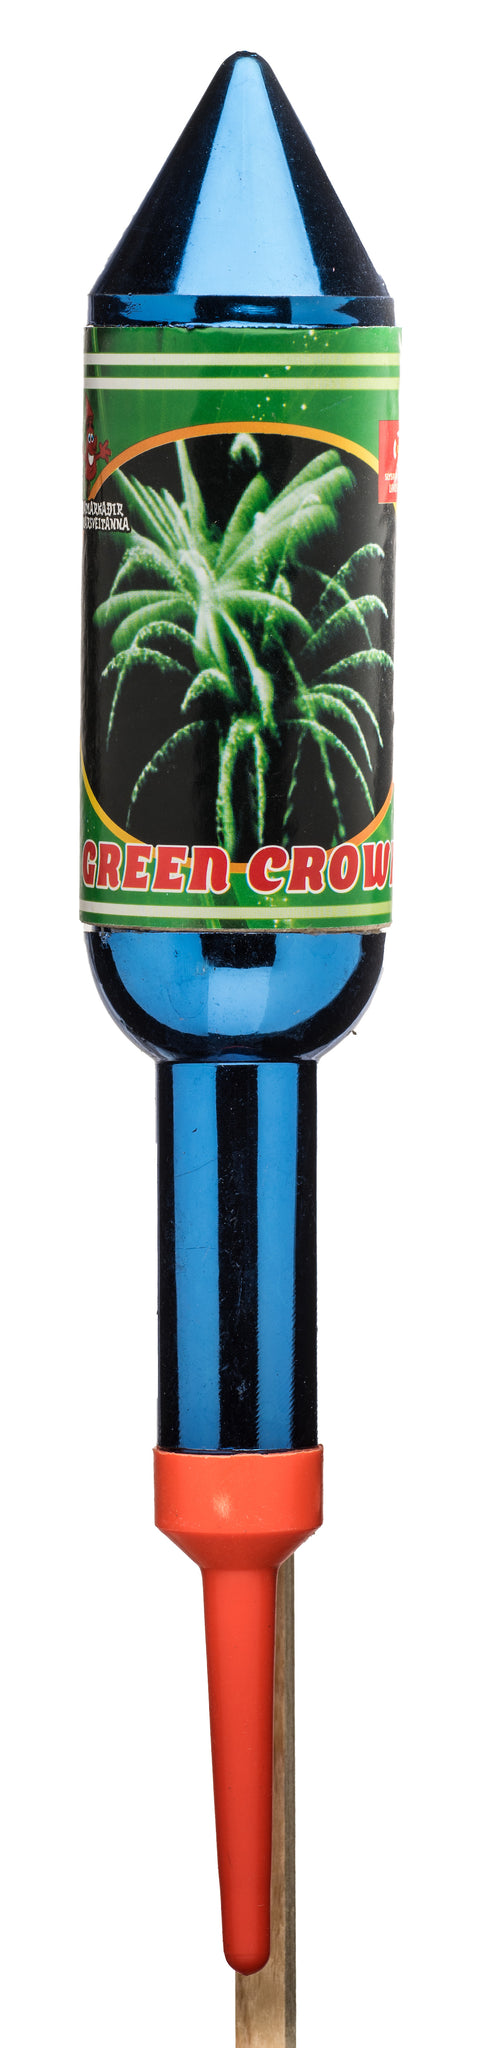 Green Crown 2 L9016